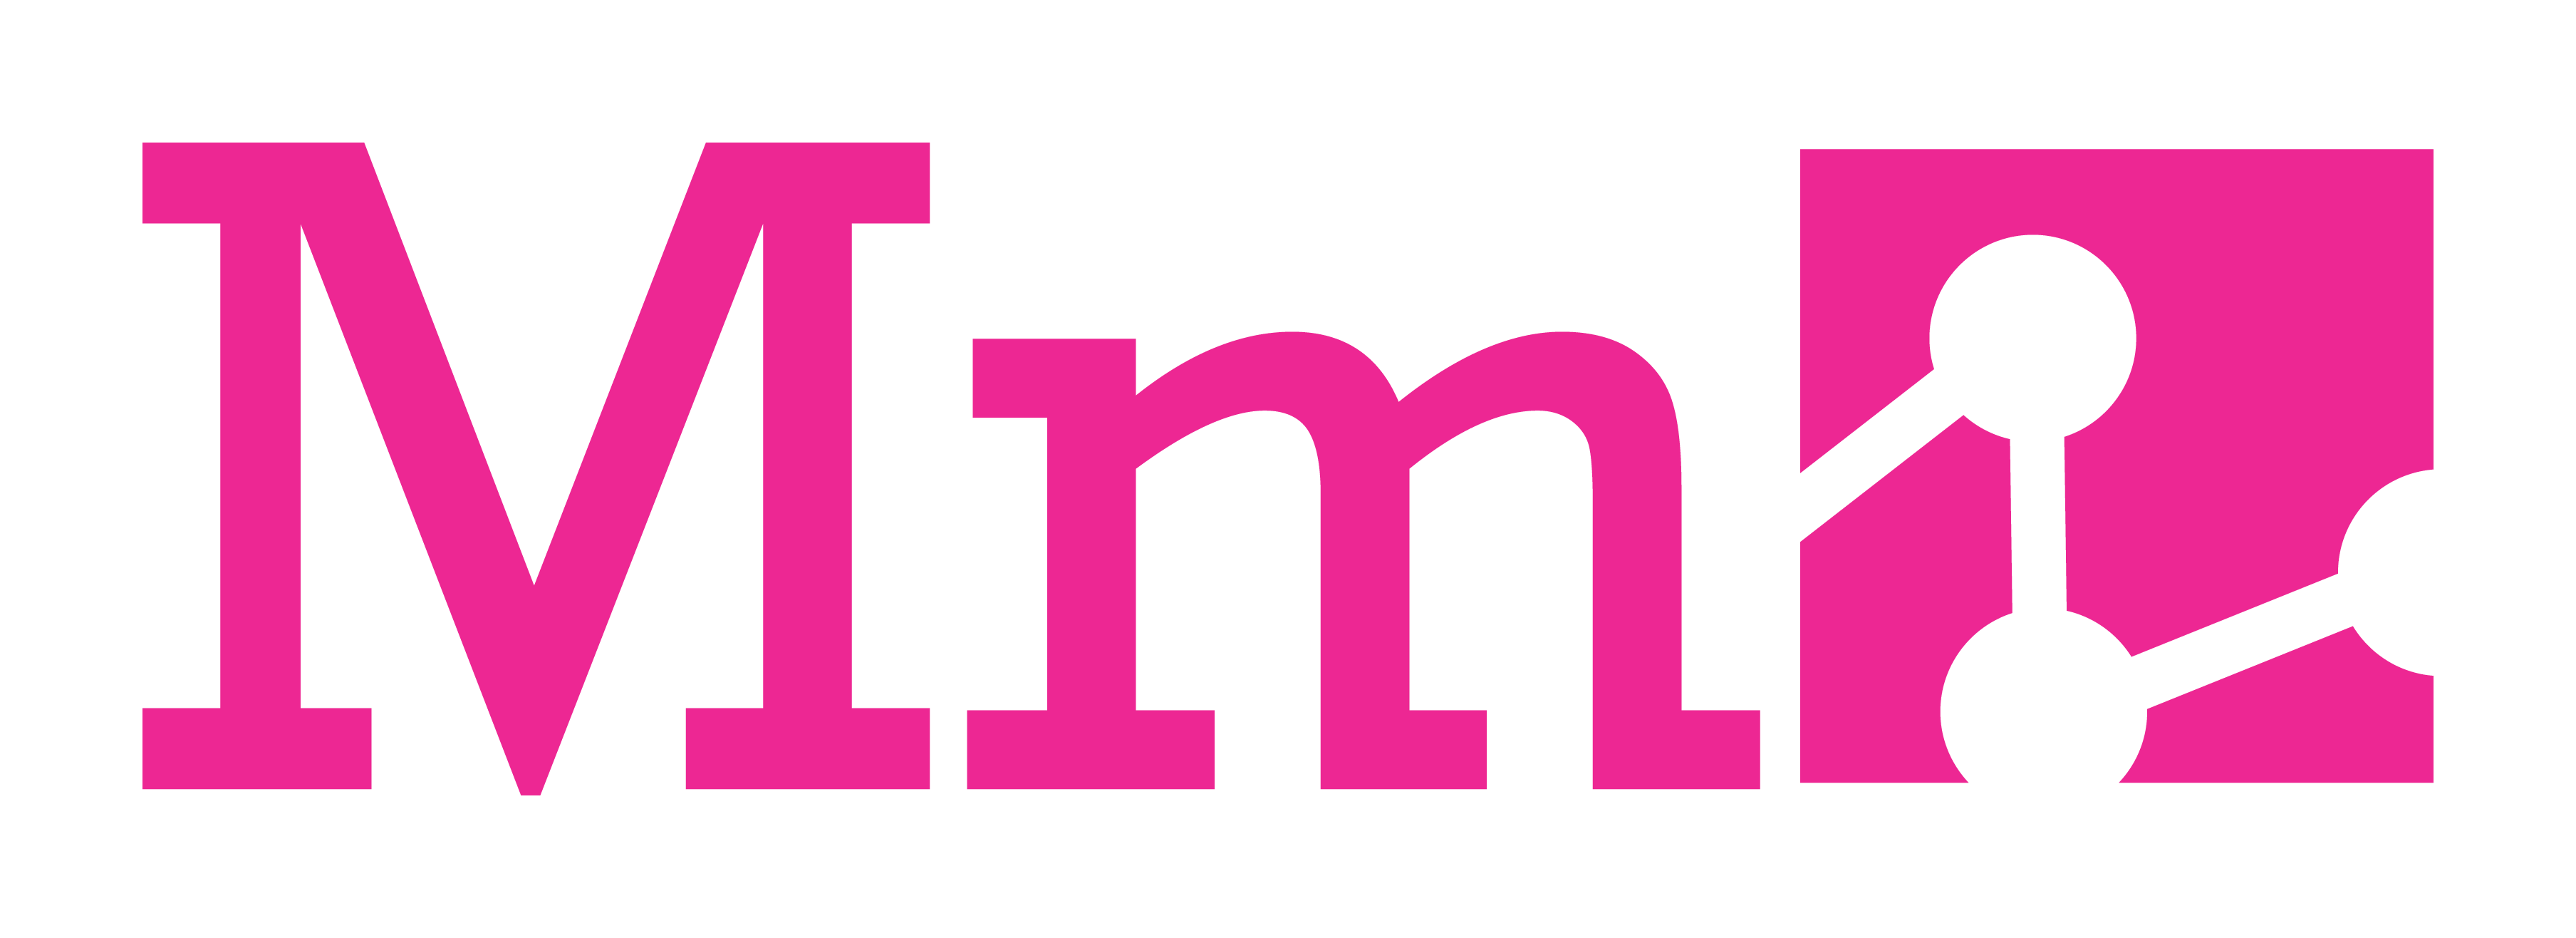 Media Molecule logo